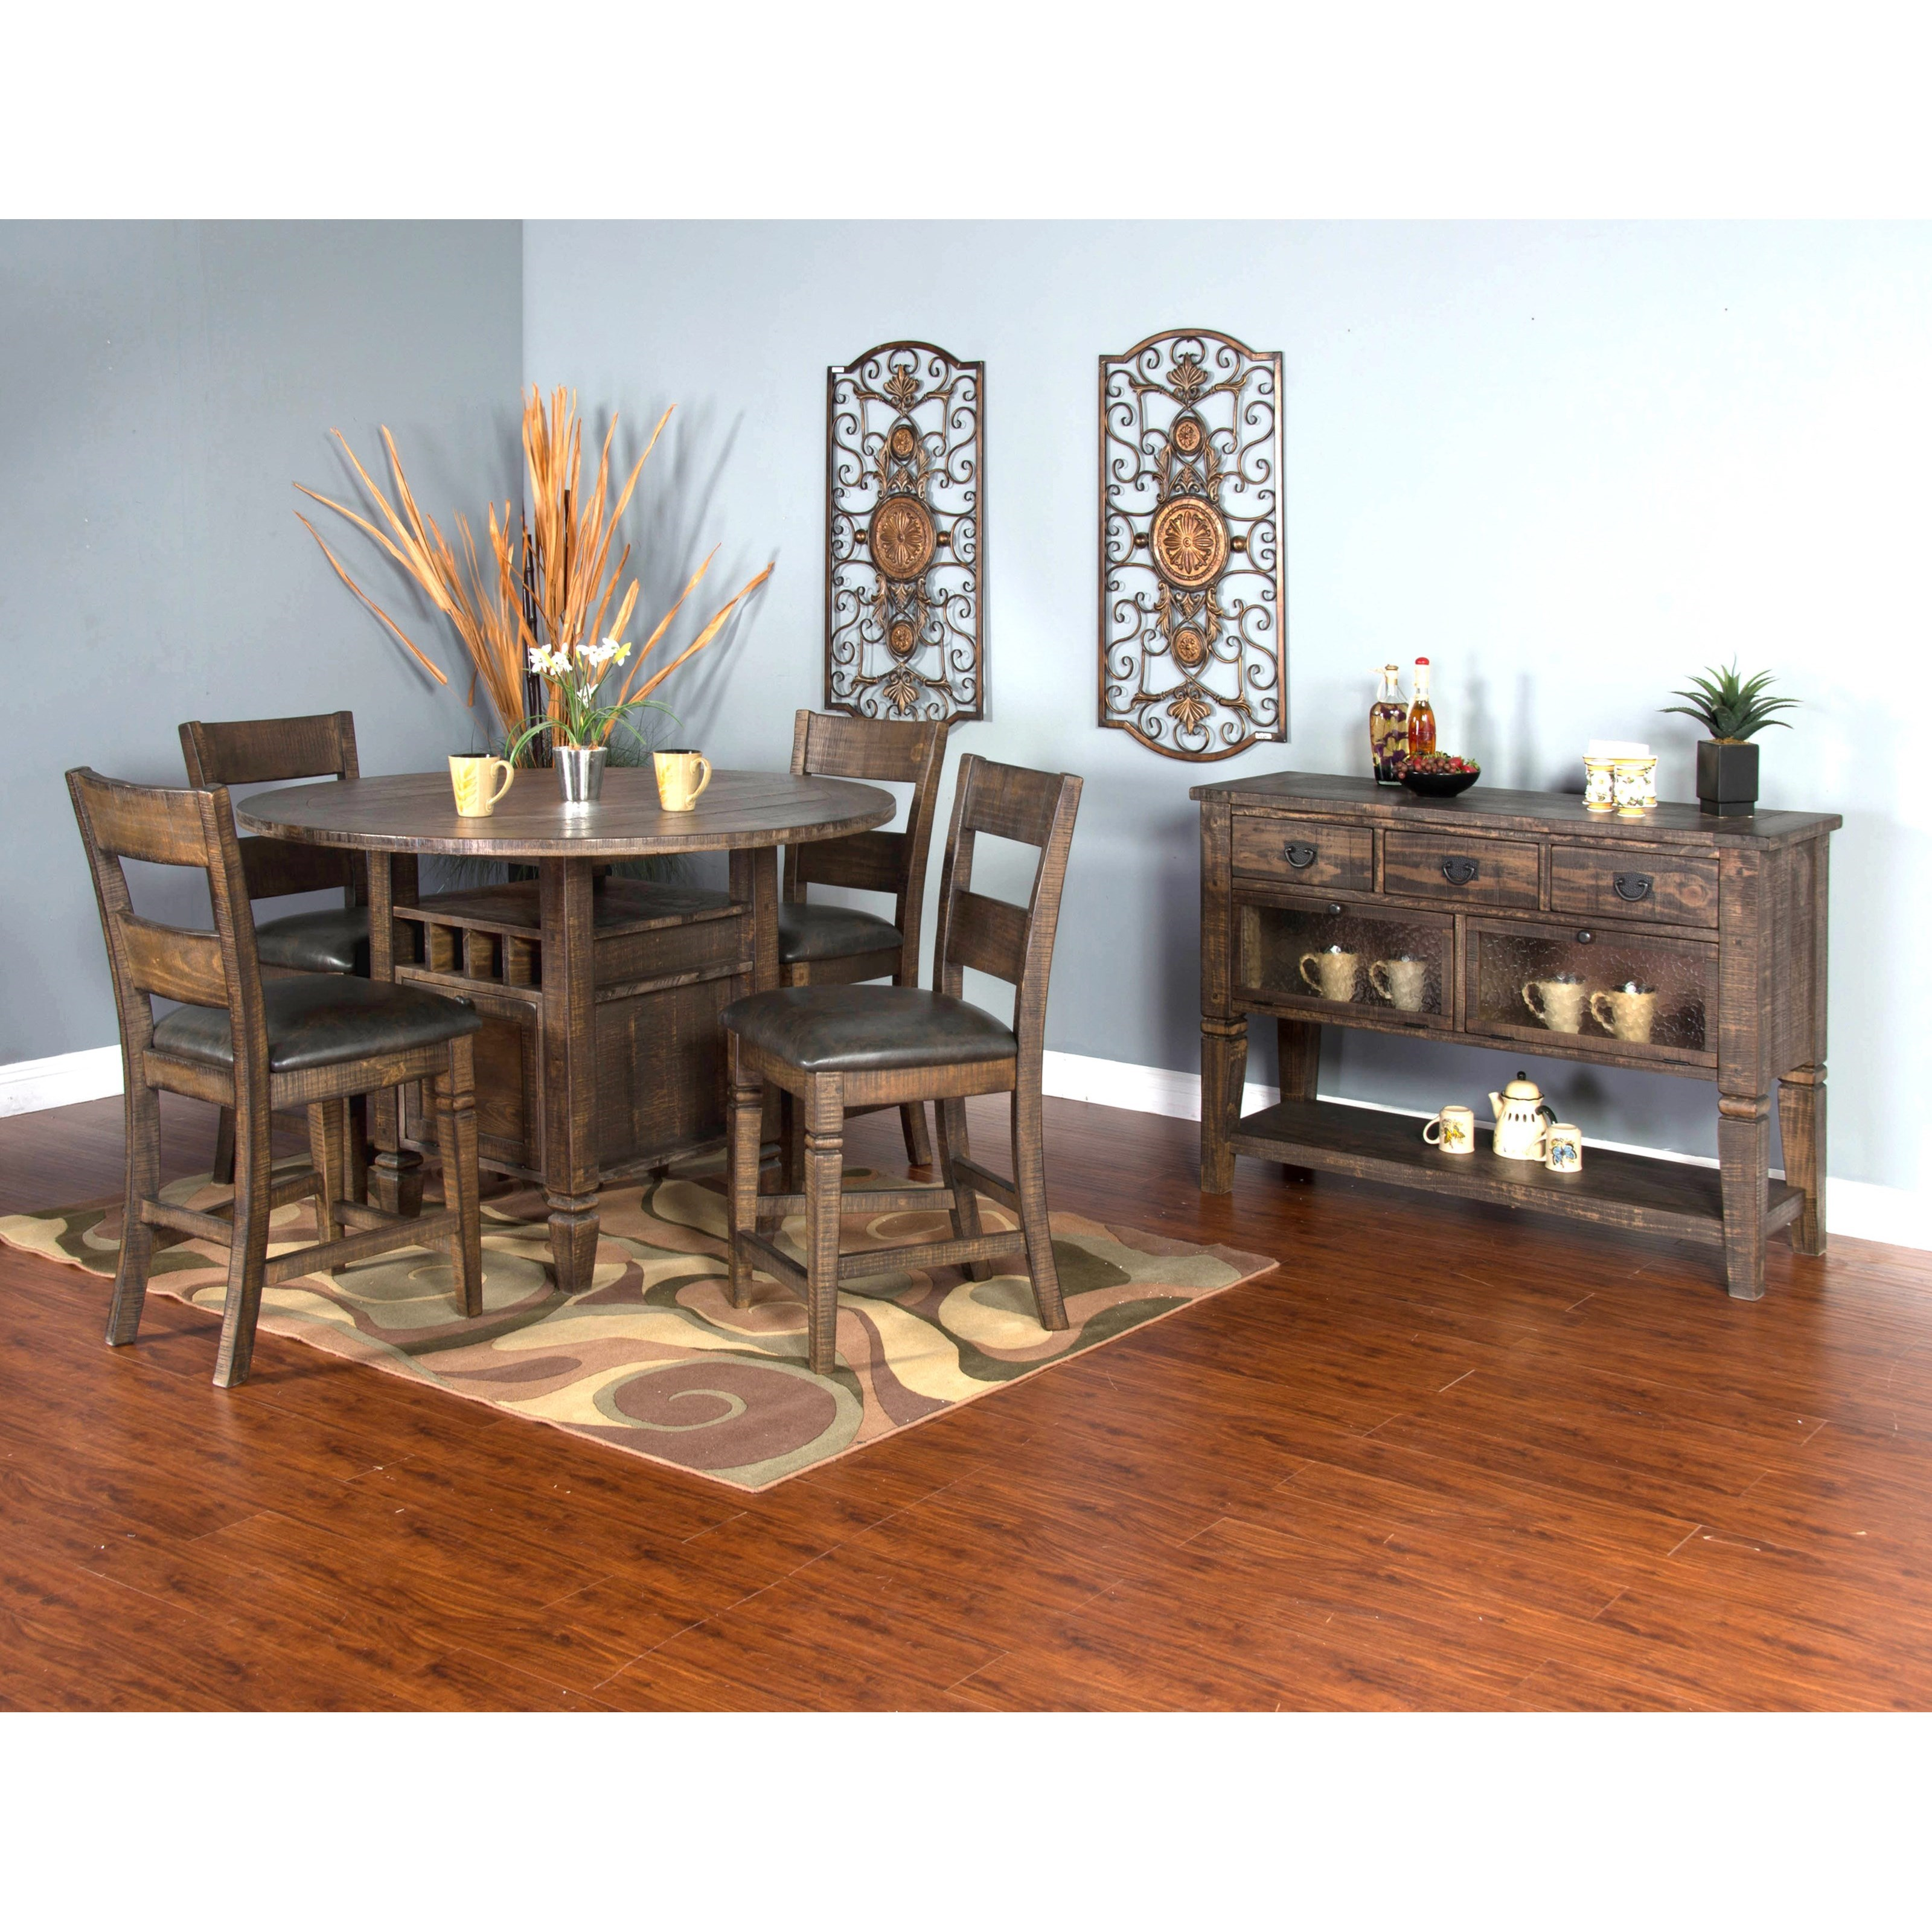 Casual Dining Room Furniture: Sunny Designs Homestead Casual Dining Room Group